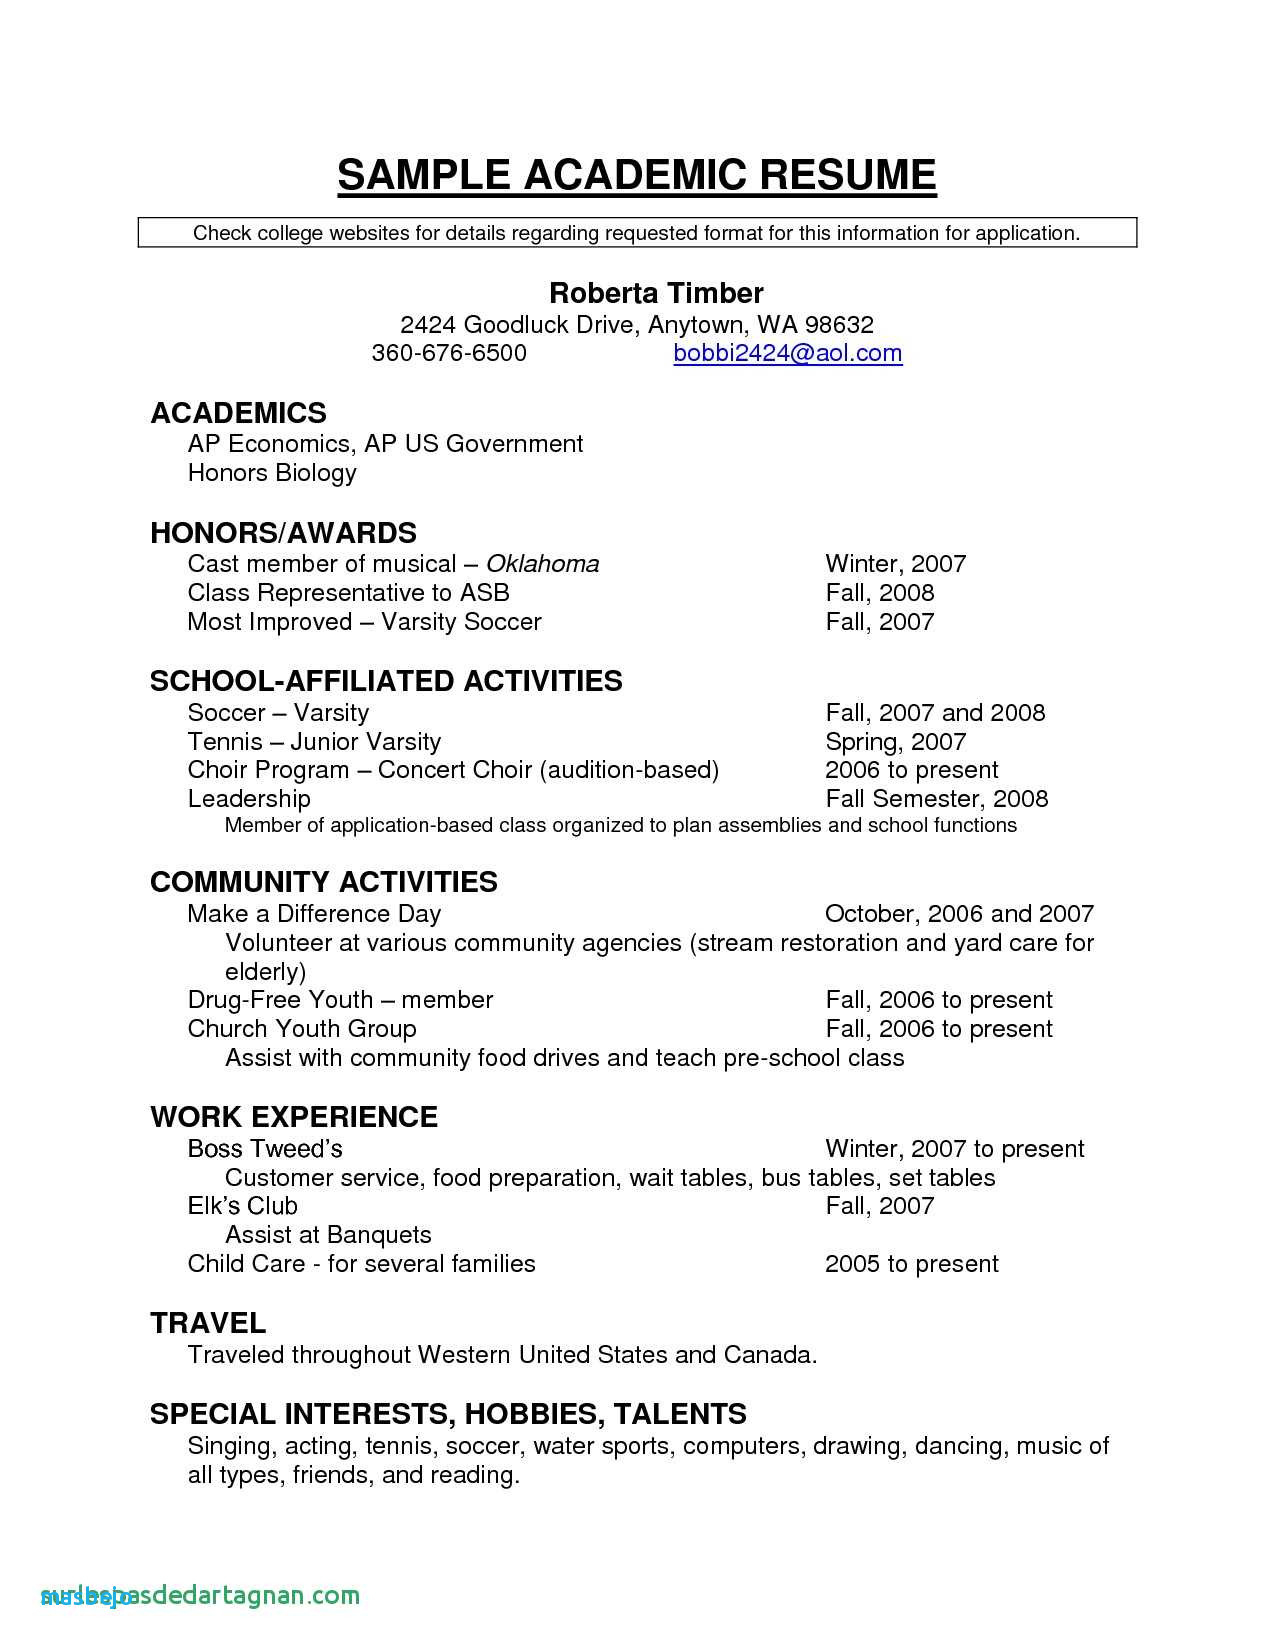 Honors and Awards Resume - Puter Resume Examples Unique Resume for Highschool Students